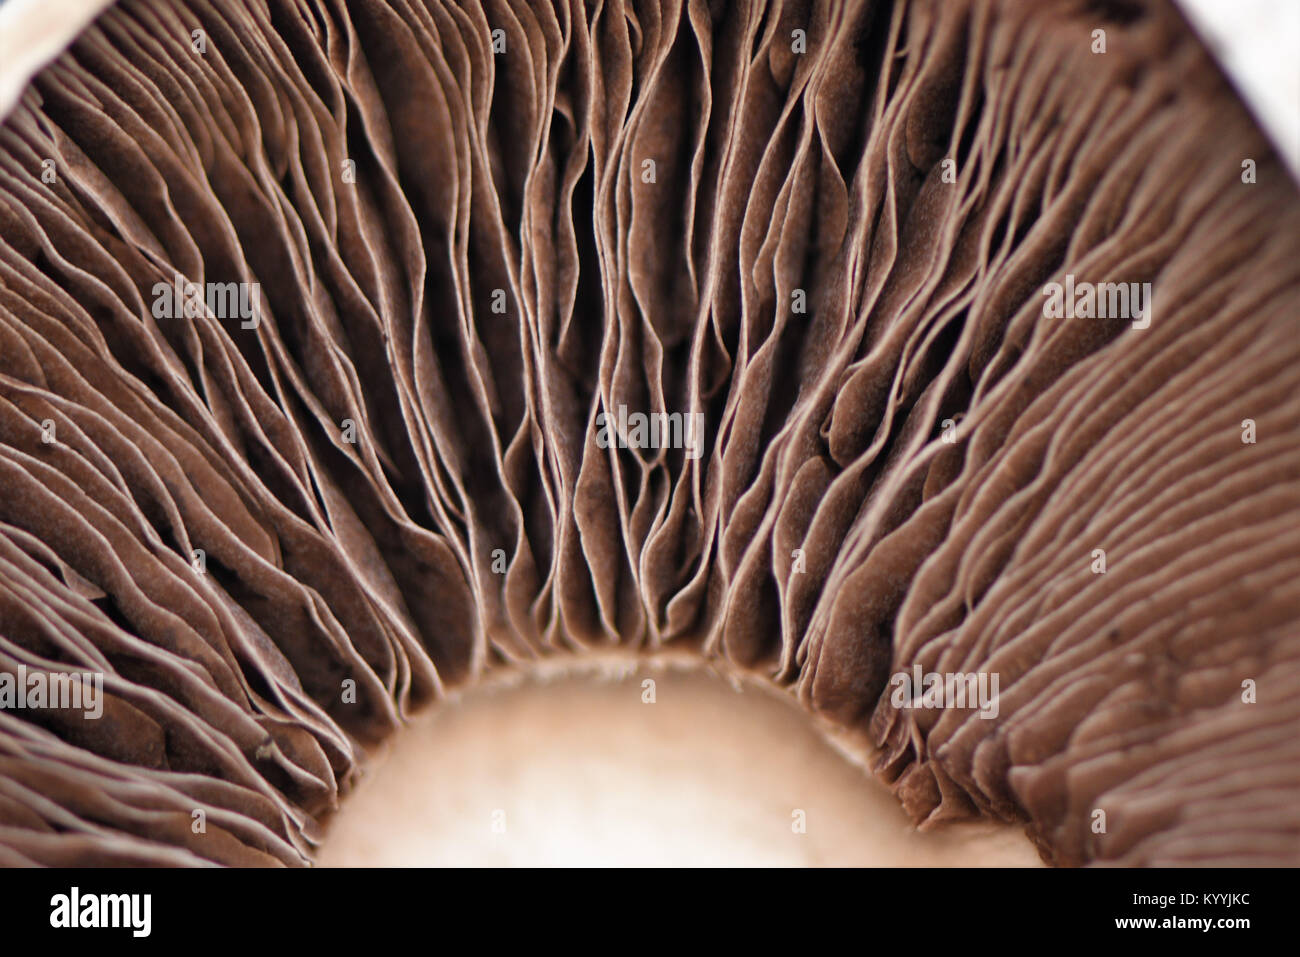 macro close up food photography image of a mushroom on the inside or underside with the brown and cream stripe gill - Stock Image